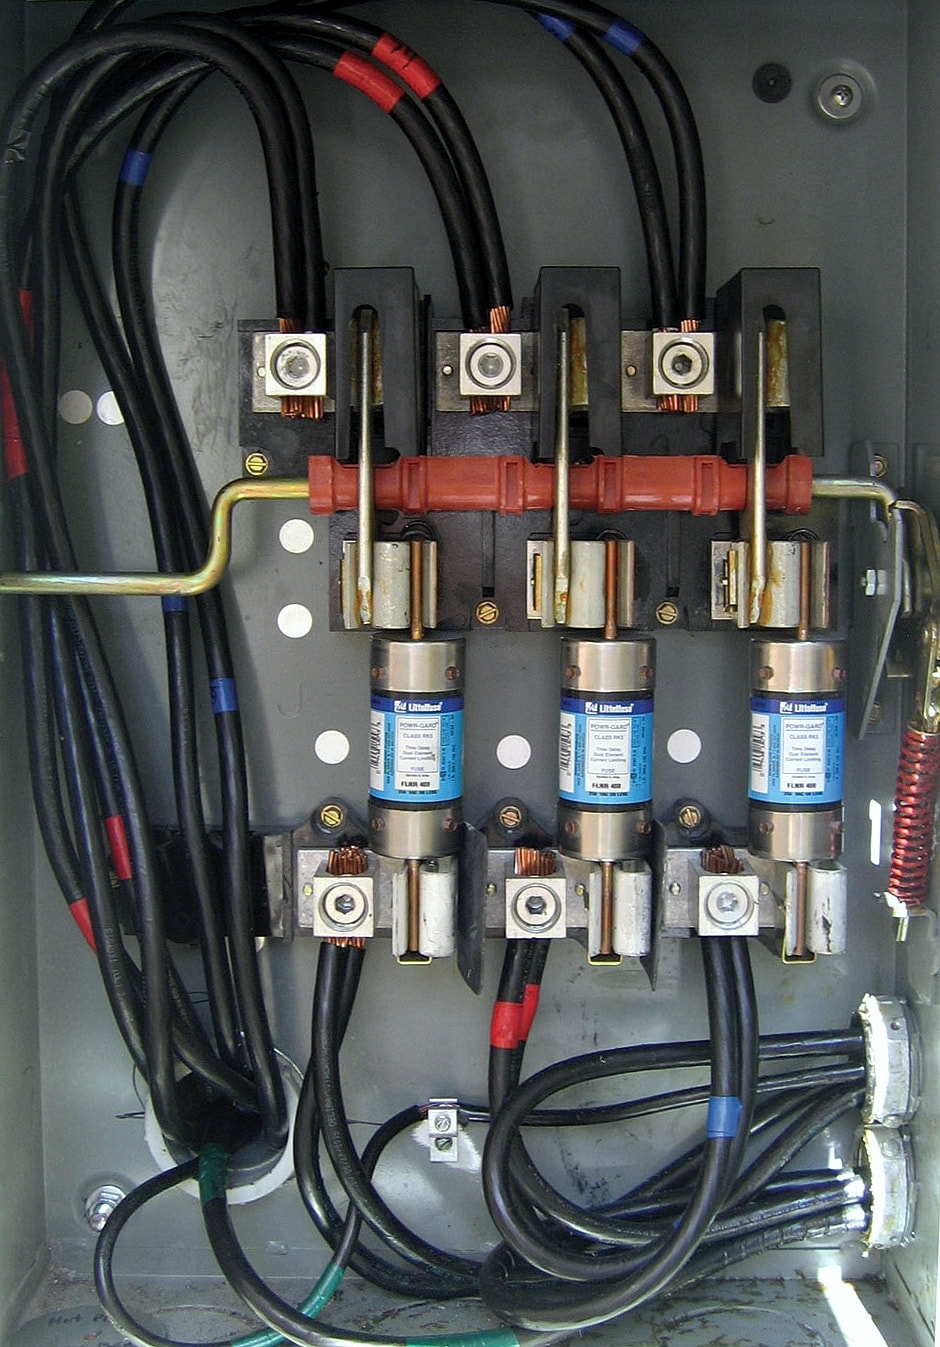 Propology Blog Electical Box Fuses A Typical Fused Electrical With Main Cut Off Switch